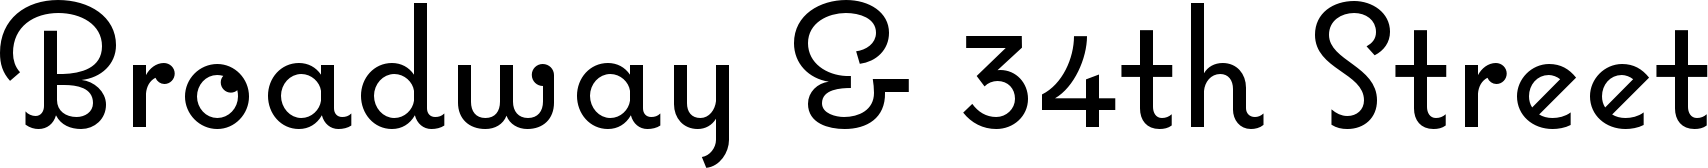 Coquette Regular